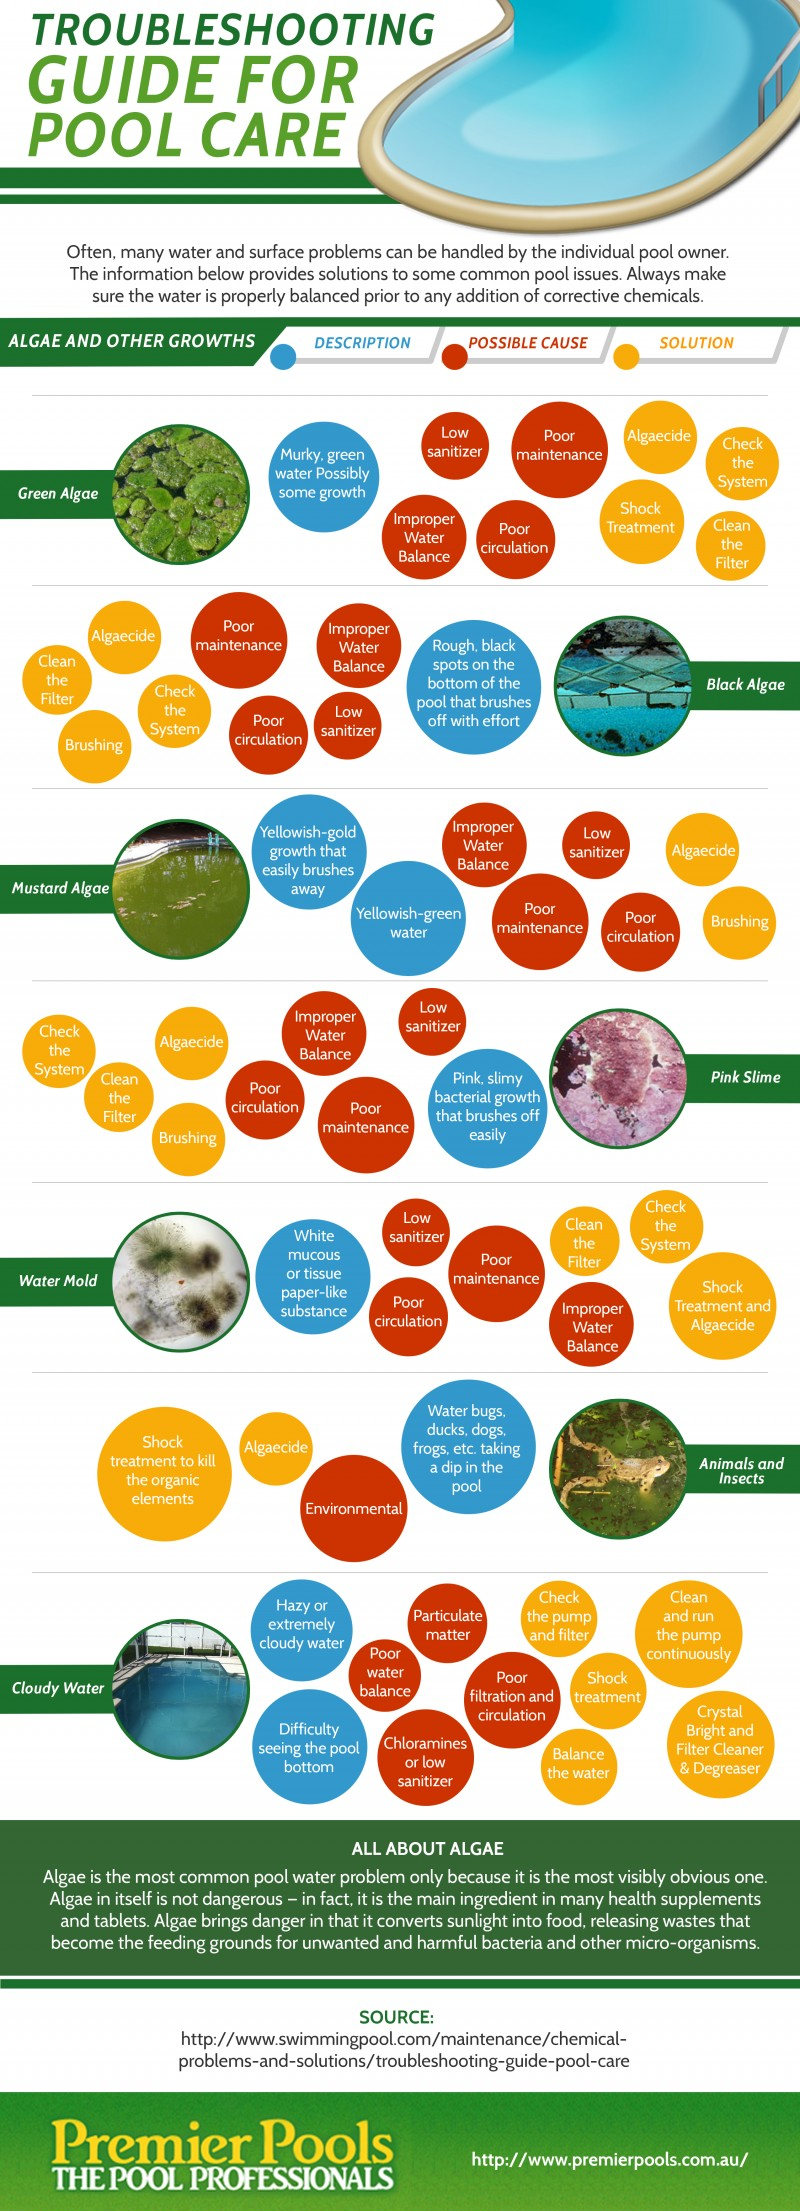 Troubleshooting Guide for Pool Care Infographic